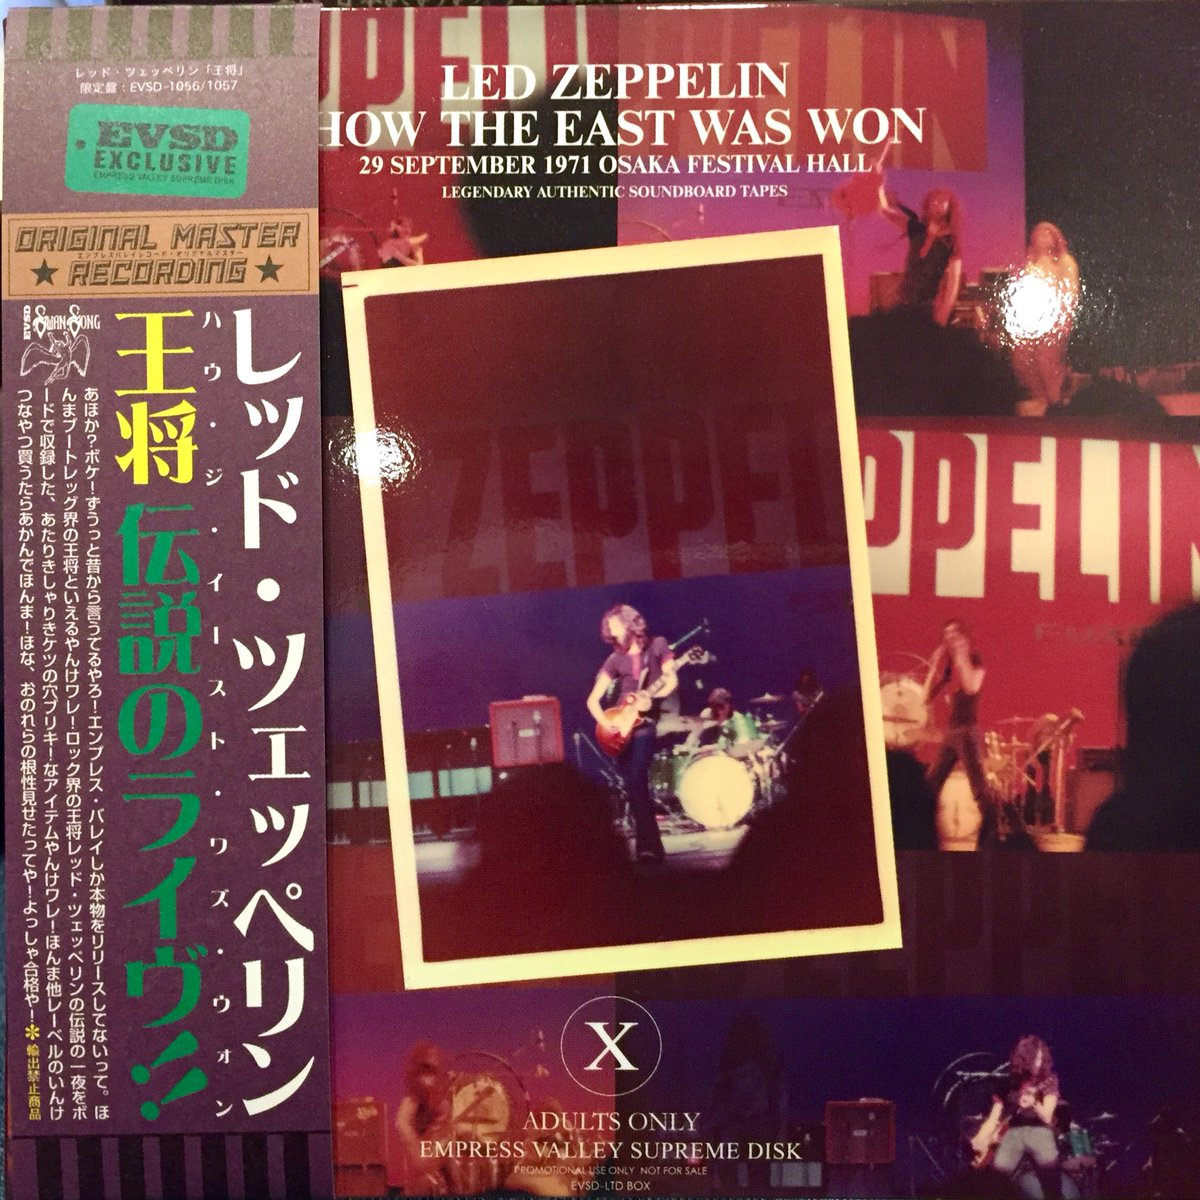 PHOTOS: The new soundboard bootleg of Led Zeppelin's